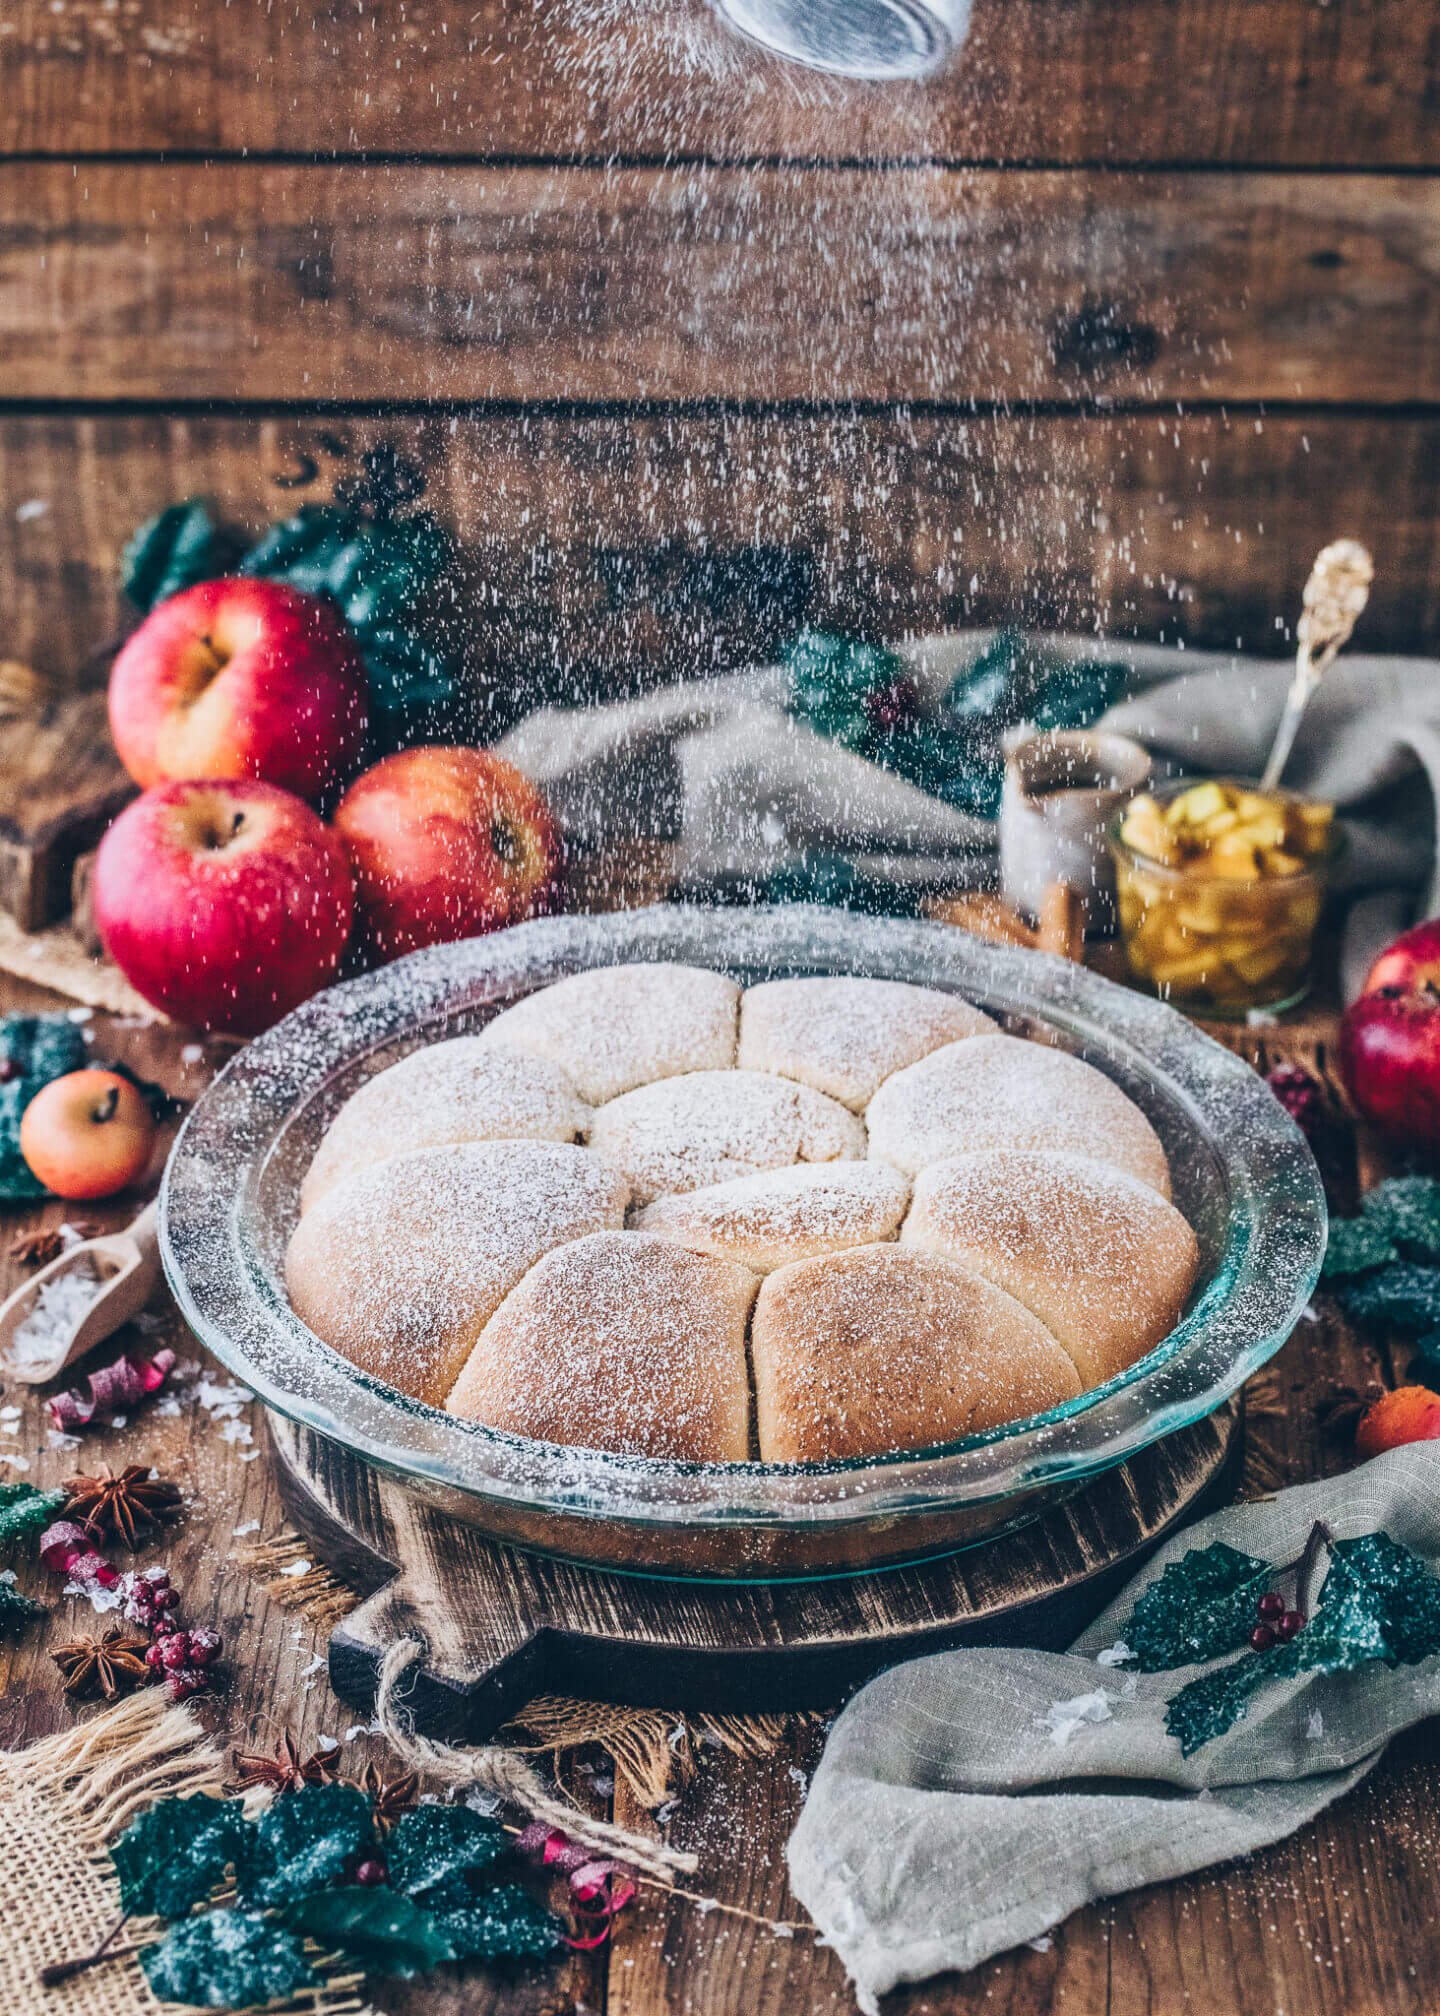 Brioche Buns with apples